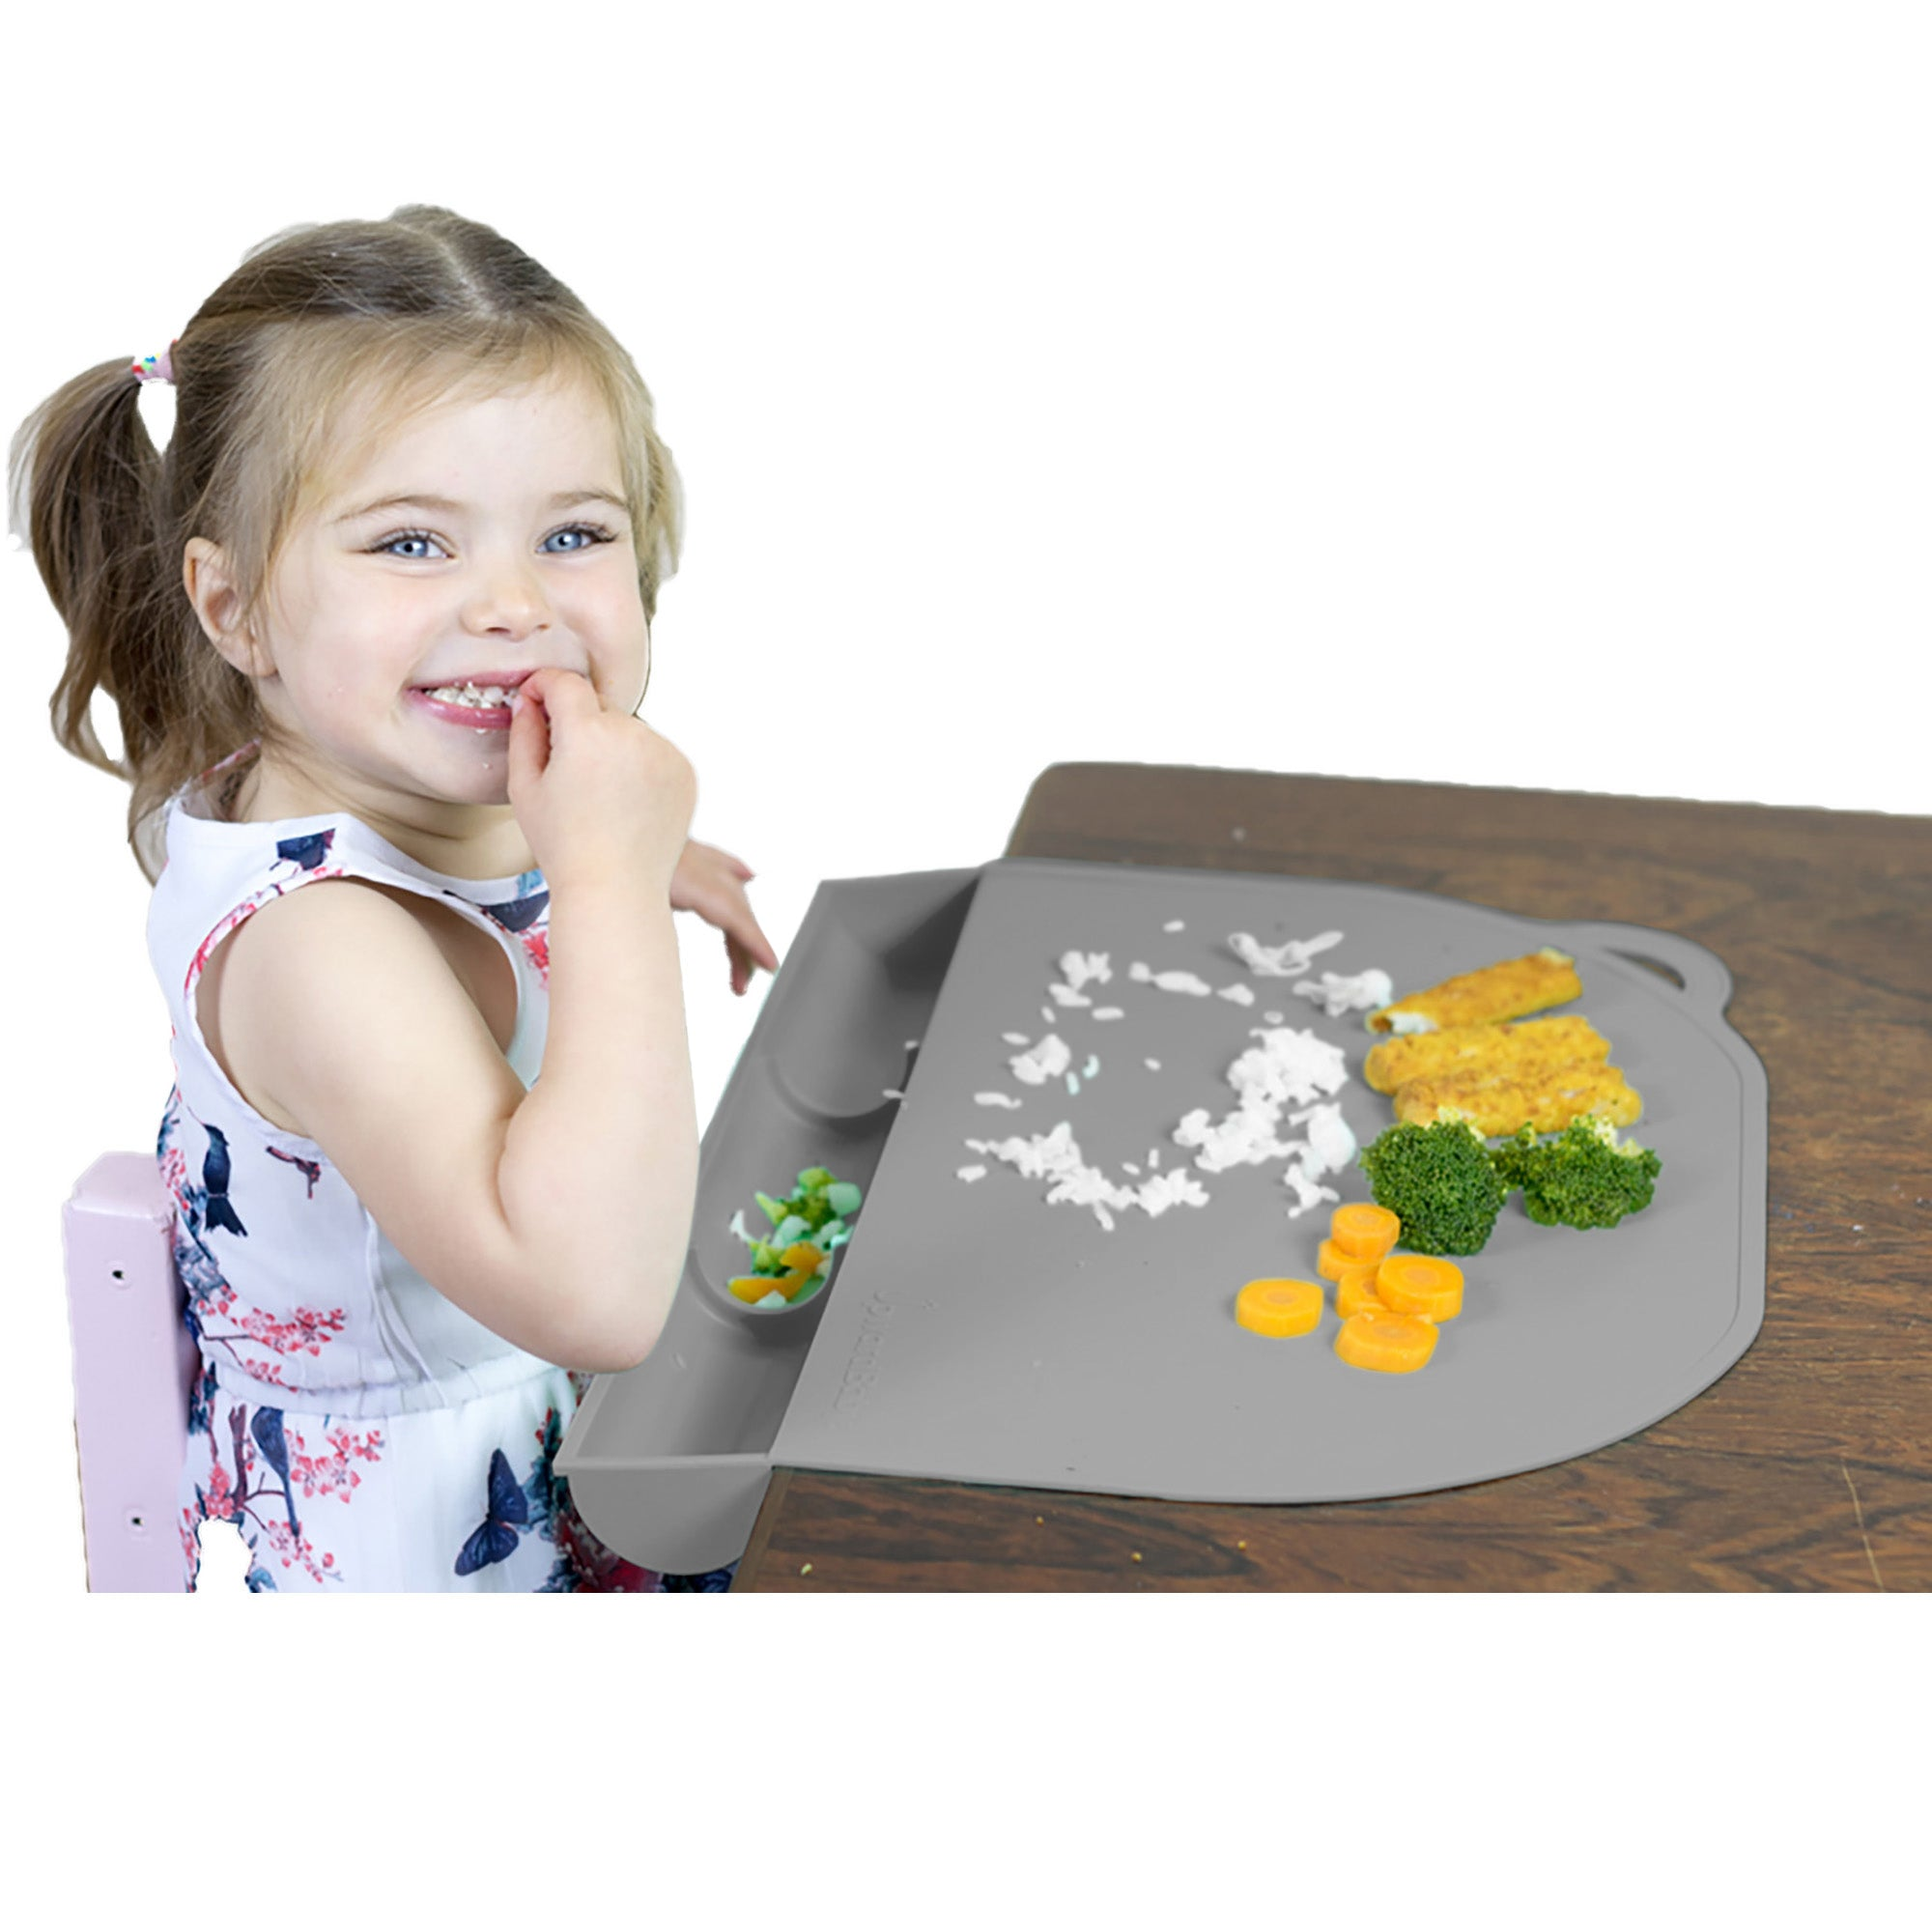 UpwardBaby Silicone Food Catching Suction Placemat - Gray